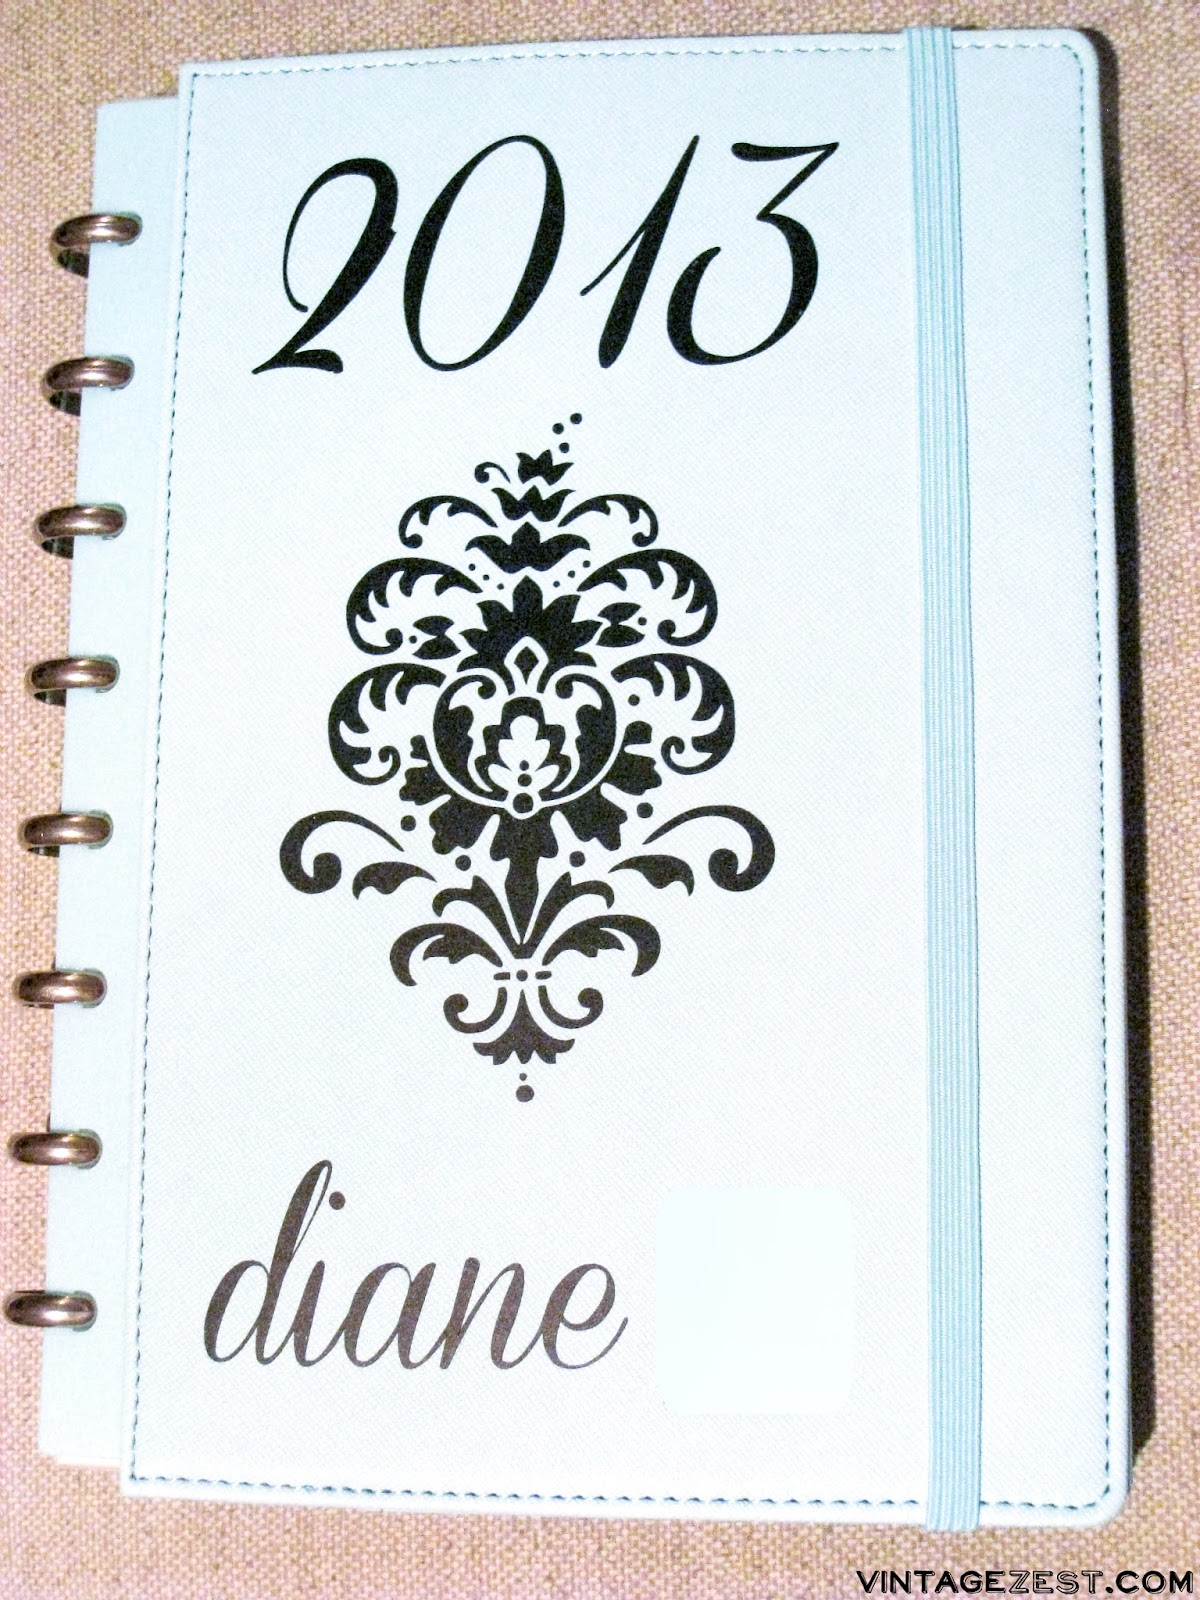 My Customized 2013 Calendar and Planner on Vintage Zest